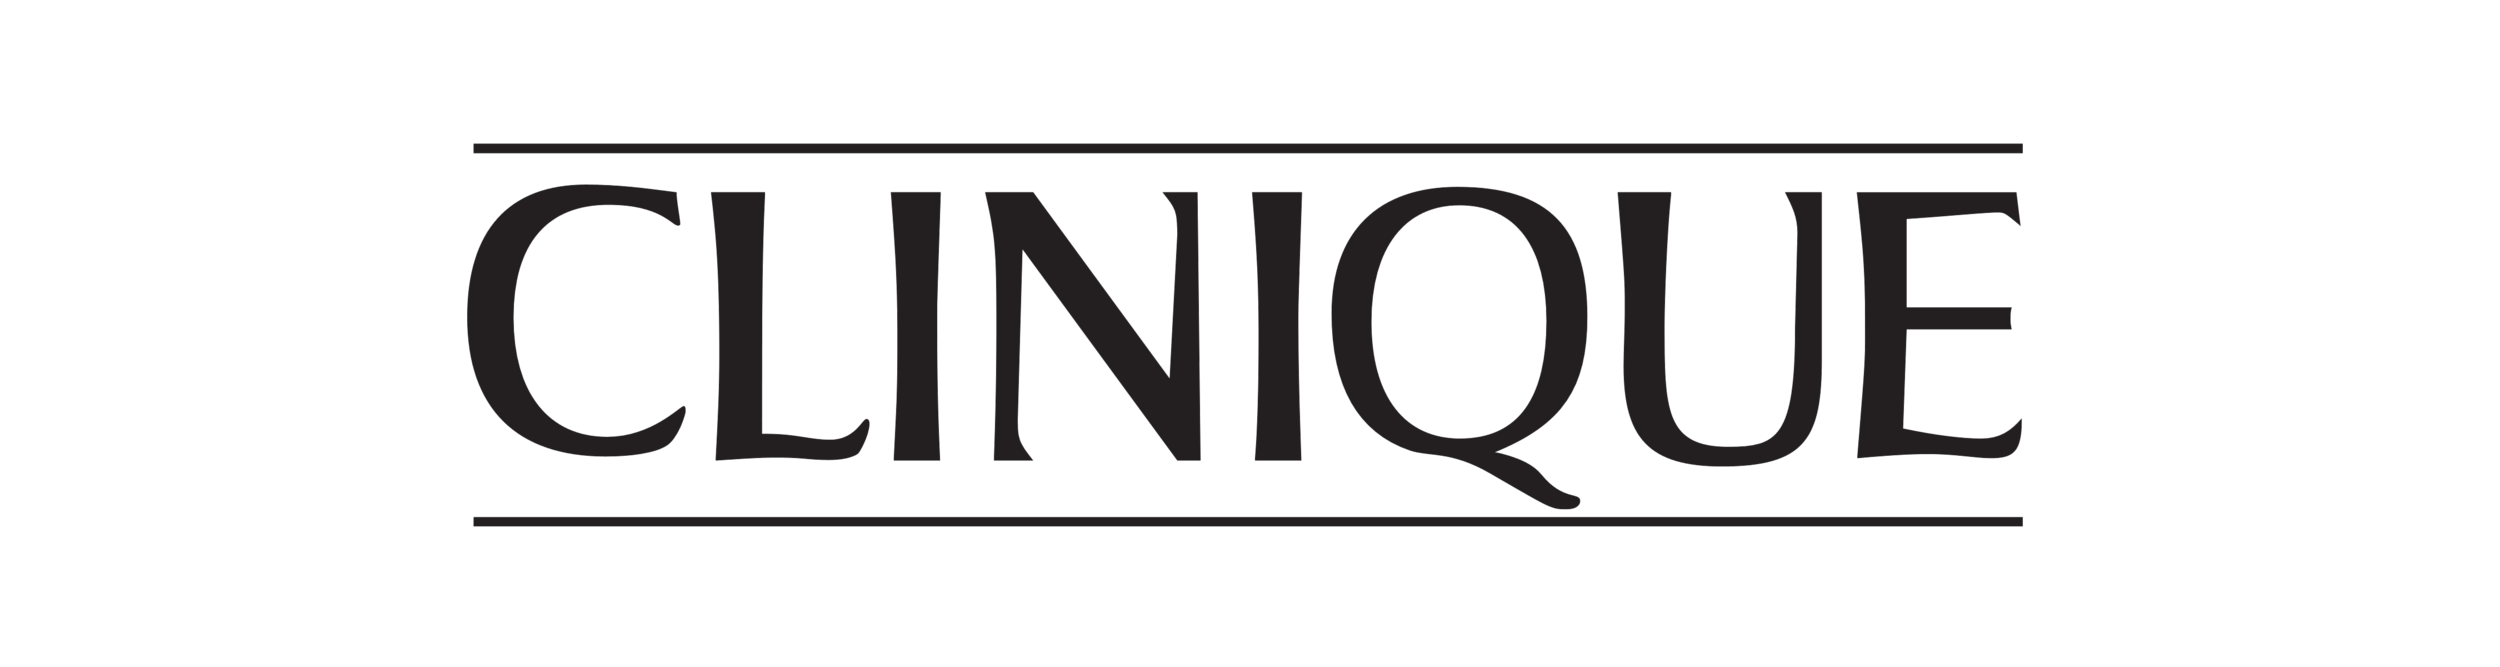 Clinique_logo_logotype_2.png